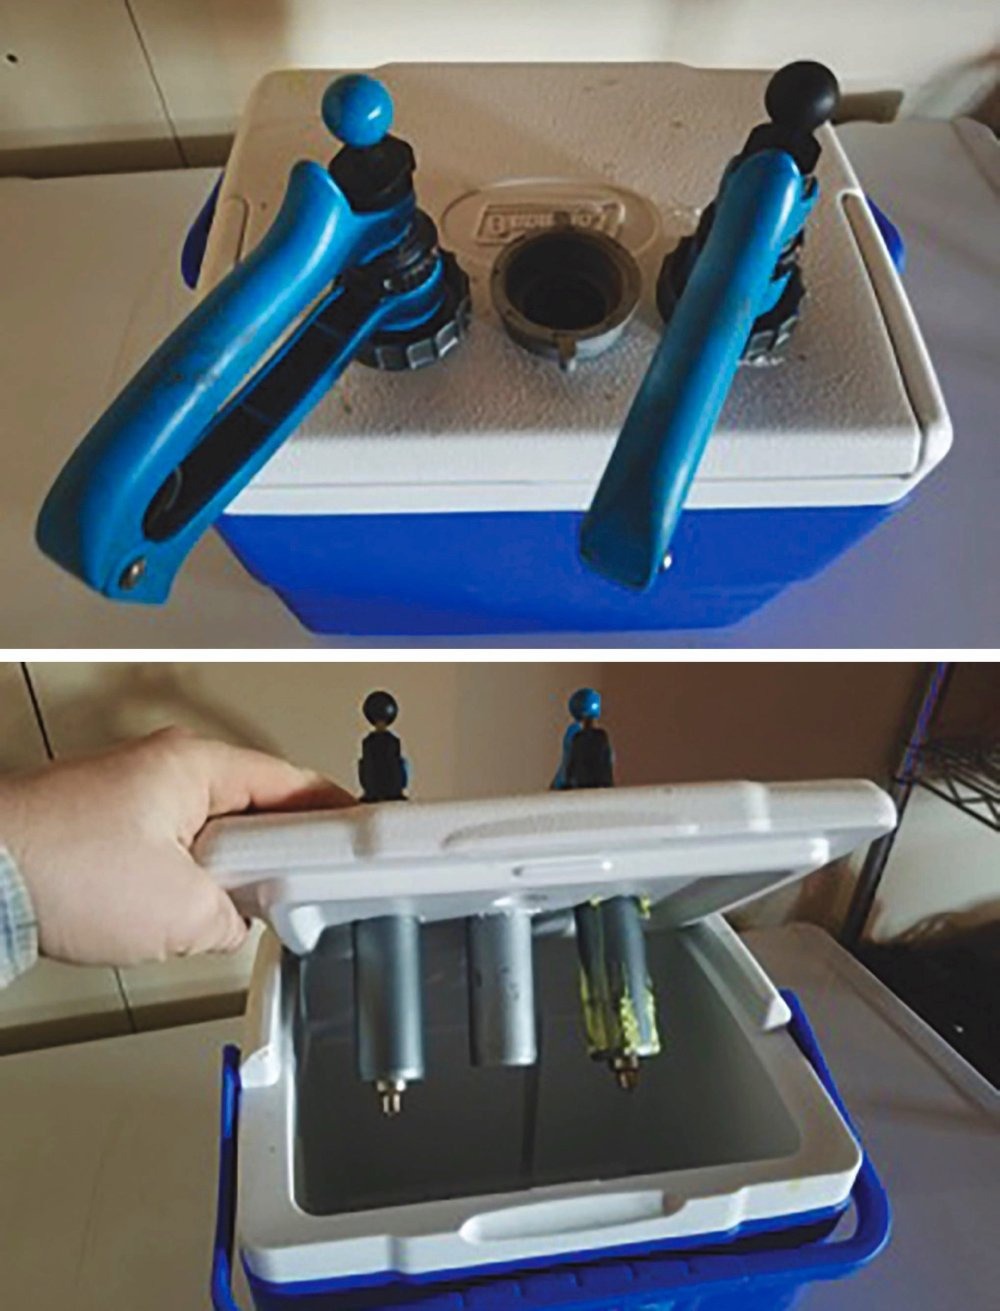 A small plastic cooler and sink drains make a handy and safe holder for materials when vaccinating cattle.